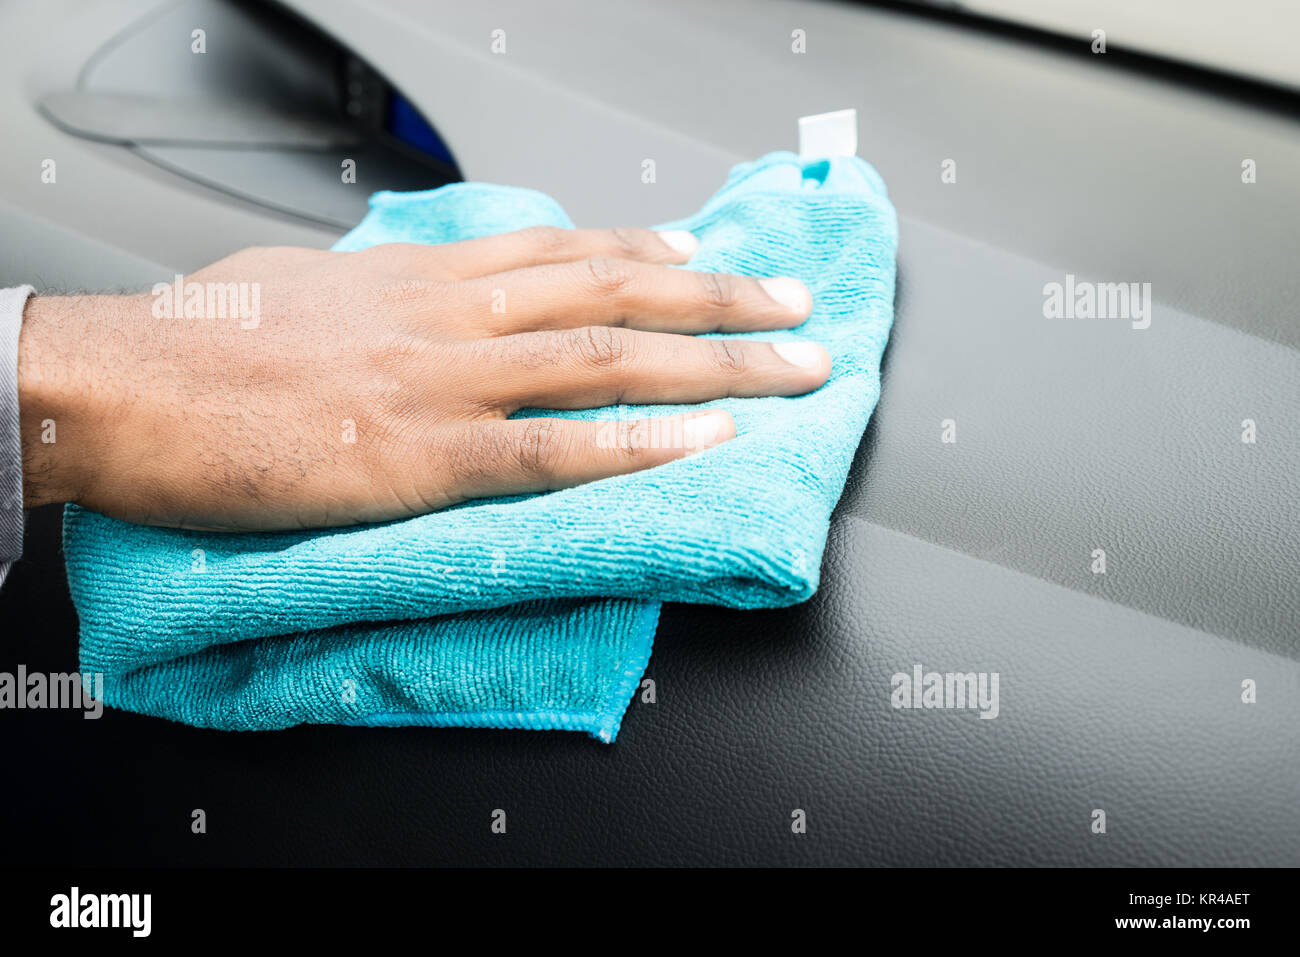 cleaning inside of car stock photos cleaning inside of car stock images alamy. Black Bedroom Furniture Sets. Home Design Ideas